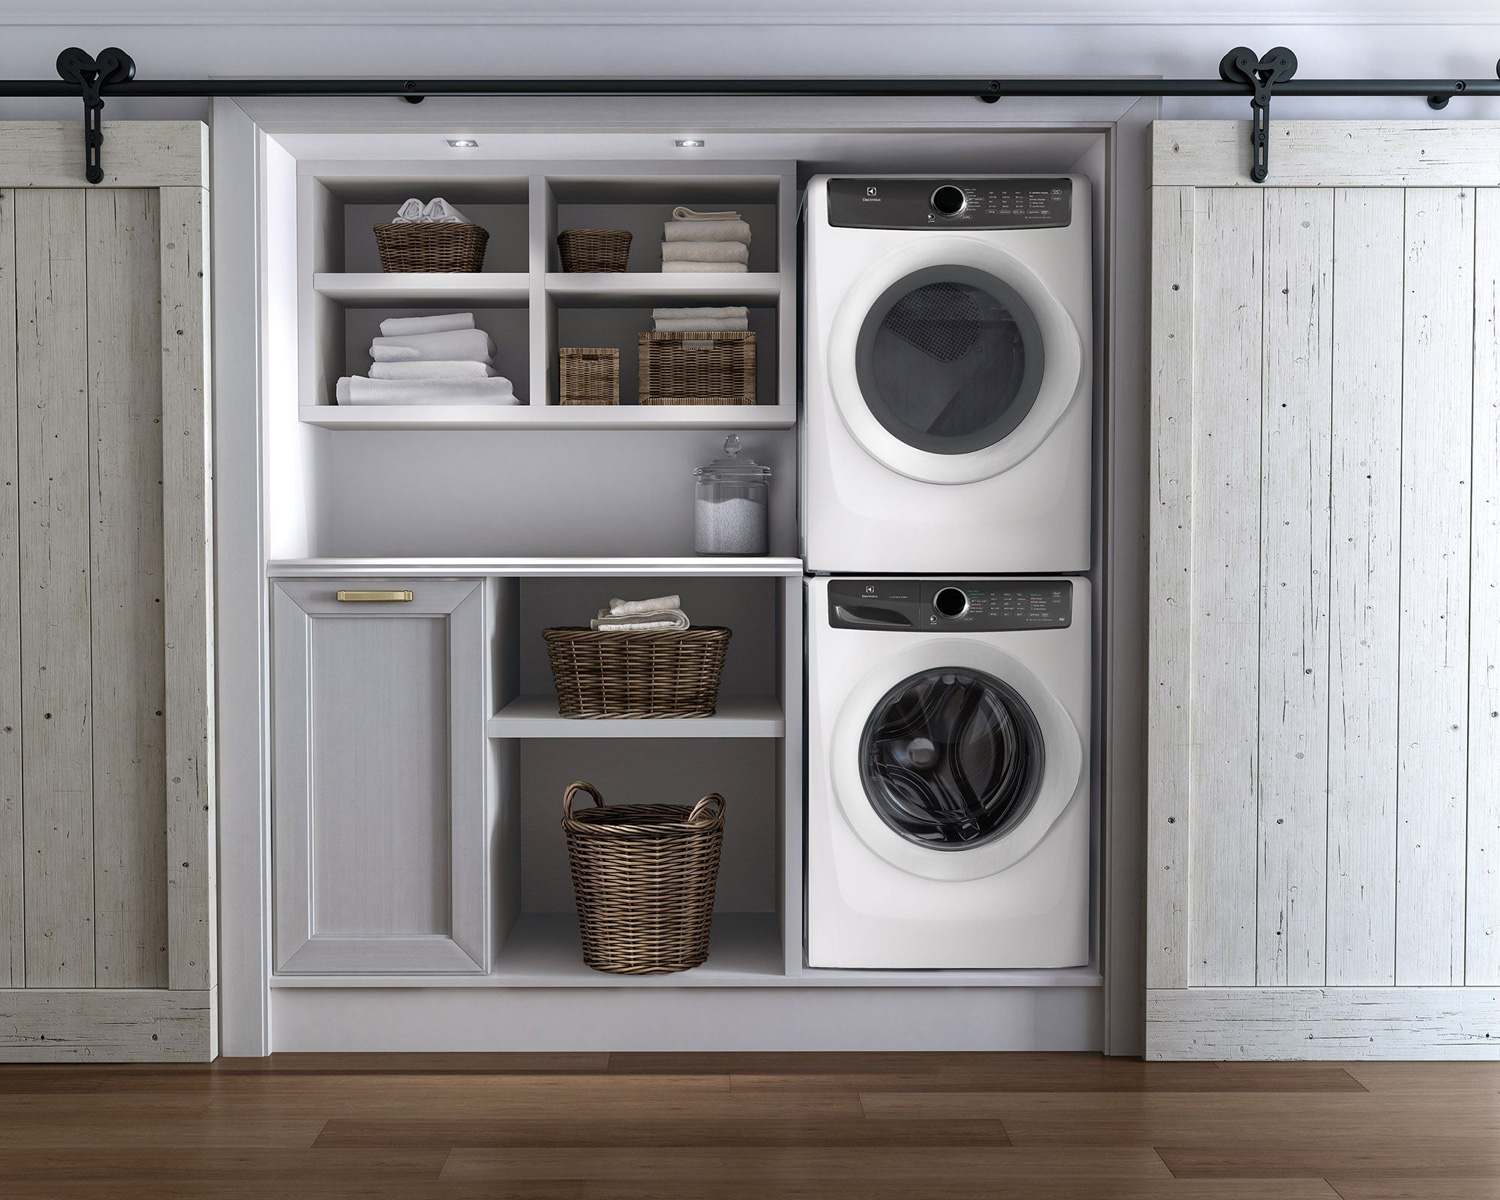 Electrolux Washer What You Need To Know Before Buying